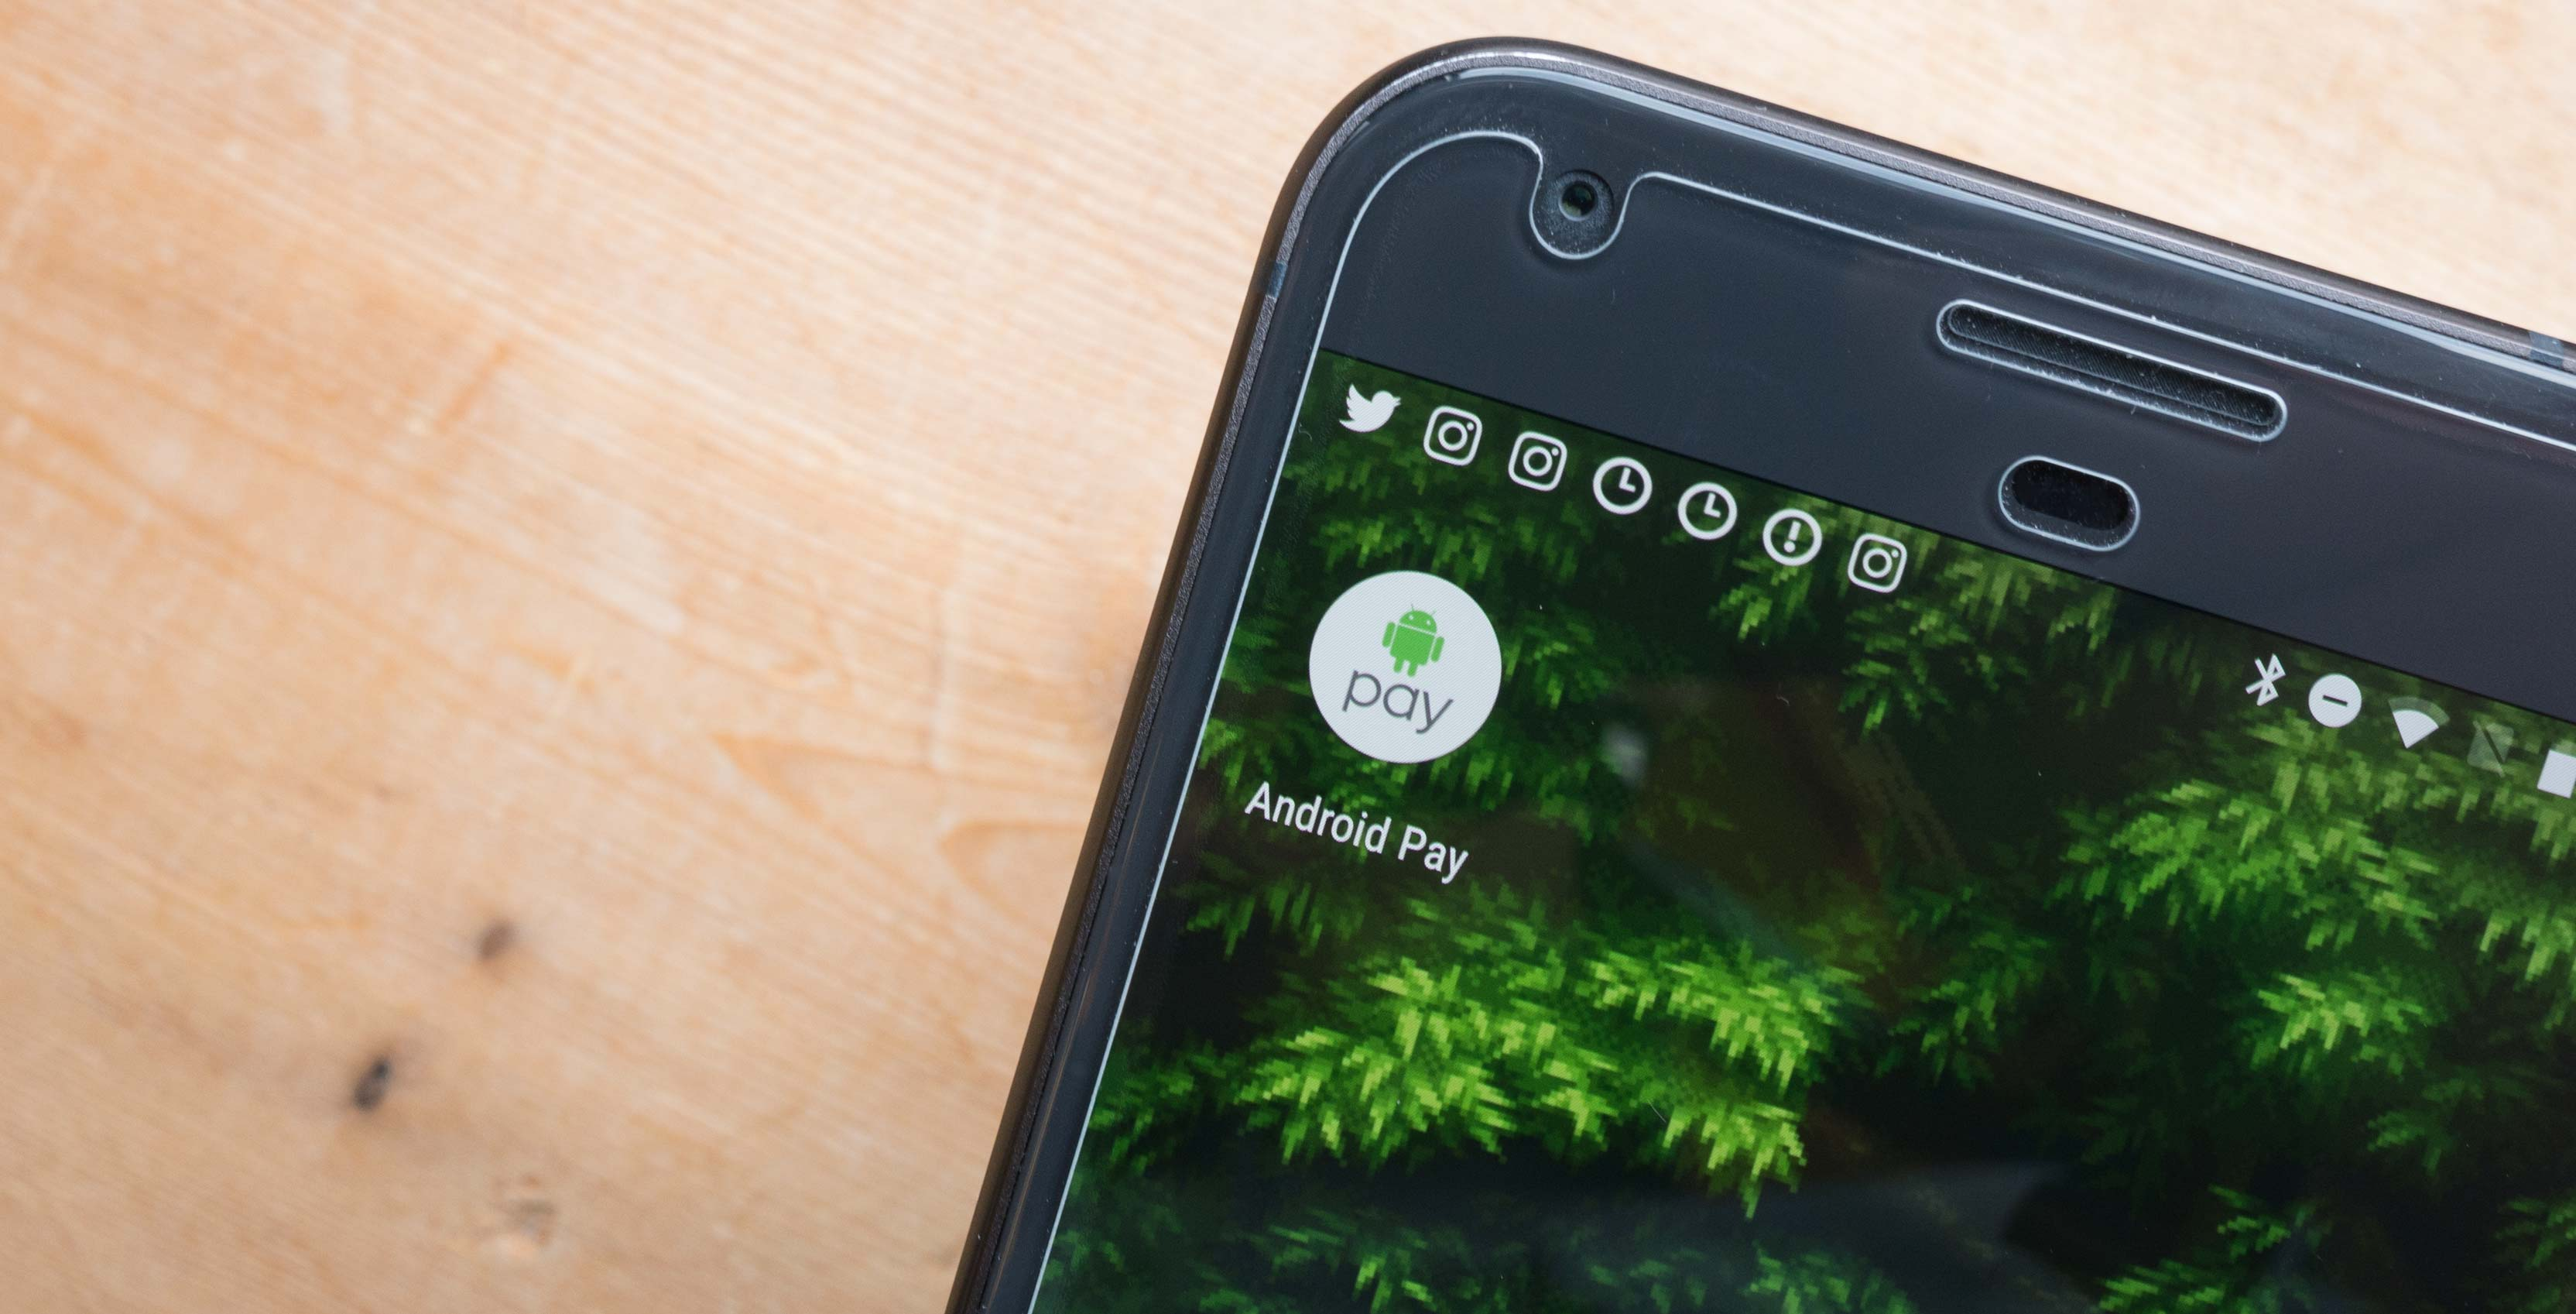 Android Pay app icon on Android